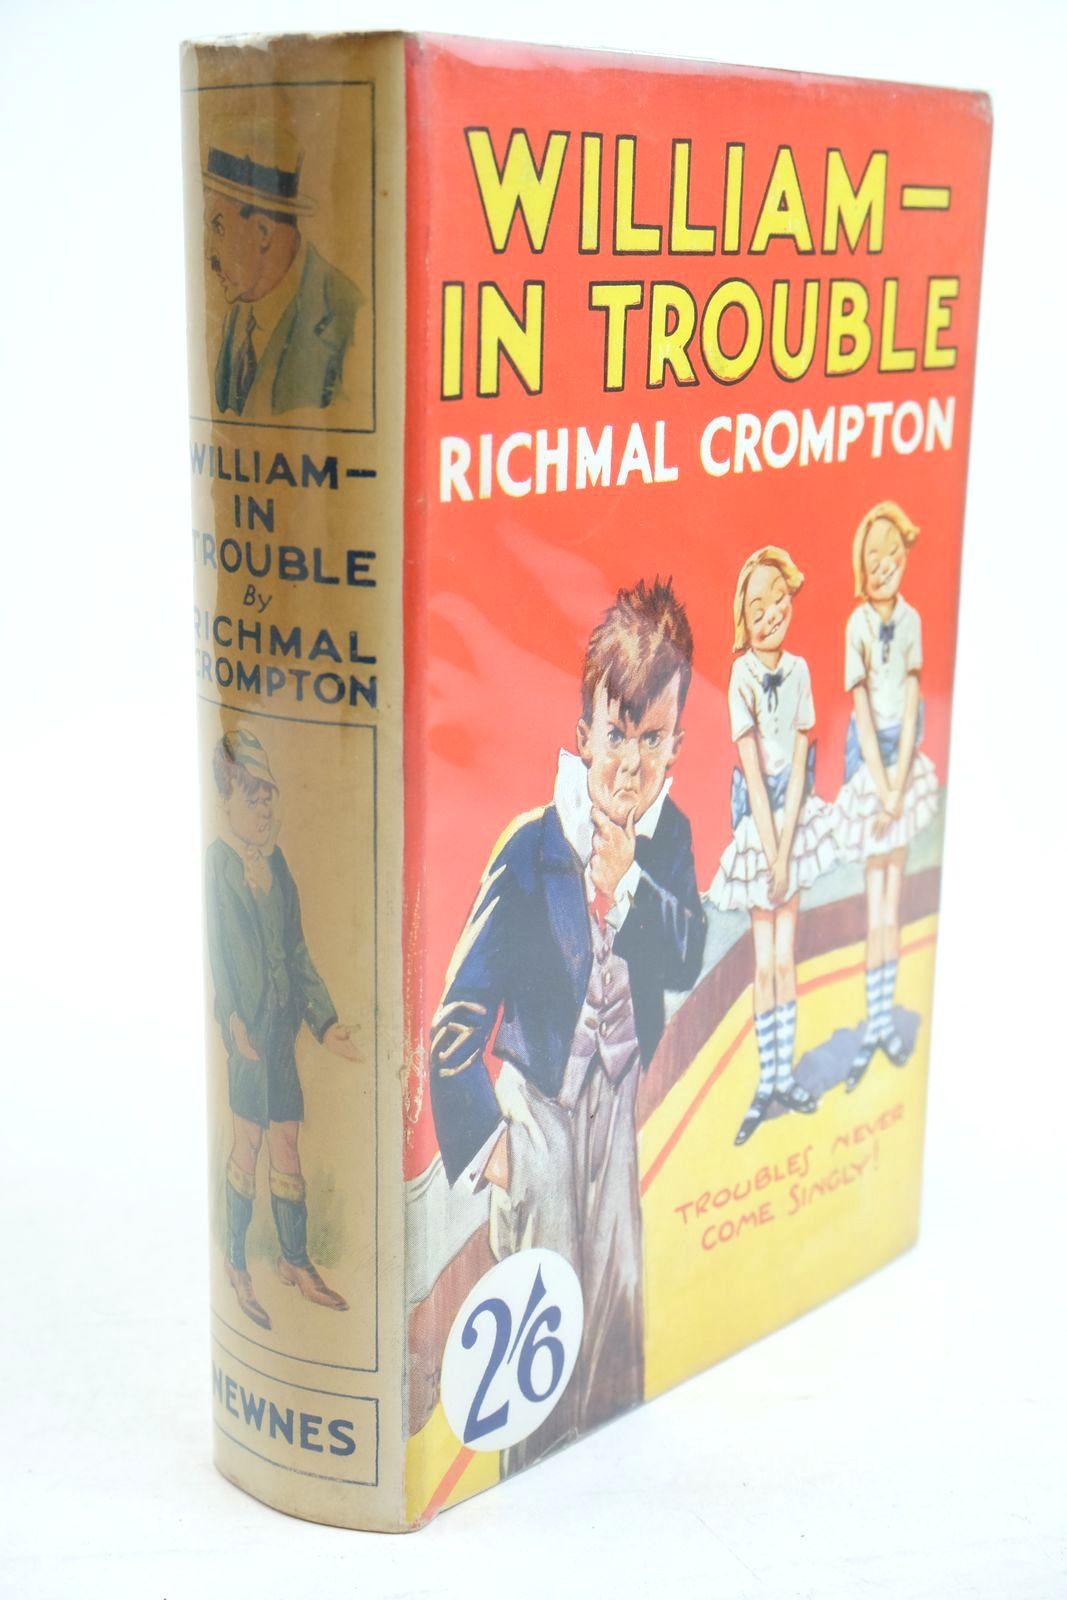 Photo of WILLIAM IN TROUBLE written by Crompton, Richmal illustrated by Henry, Thomas published by George Newnes Limited (STOCK CODE: 1320873)  for sale by Stella & Rose's Books